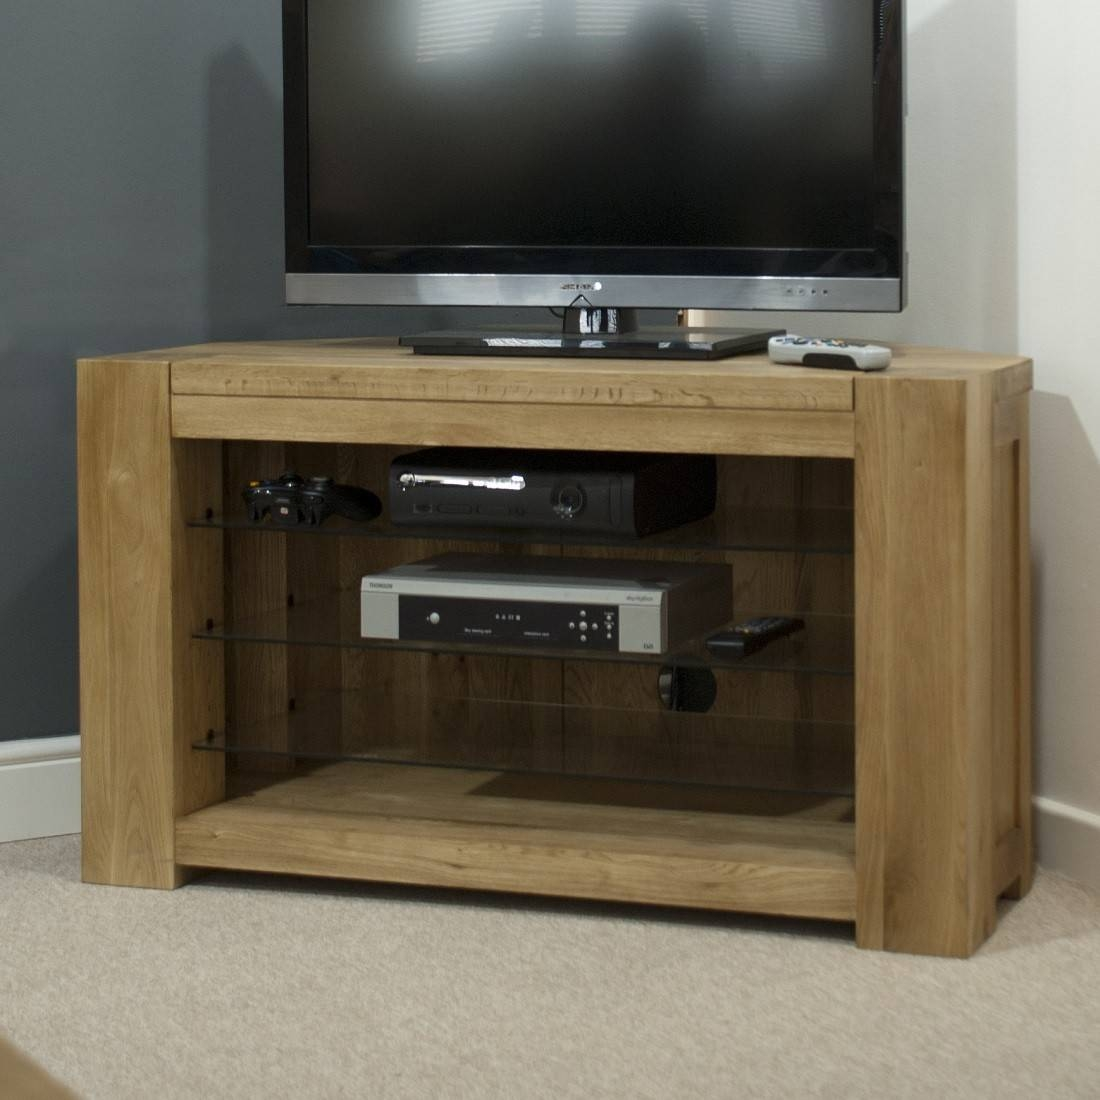 Trend Solid Oak Corner Tv Unit | Oak Furniture Uk throughout Oak Tv Stands For Flat Screens (Image 9 of 15)